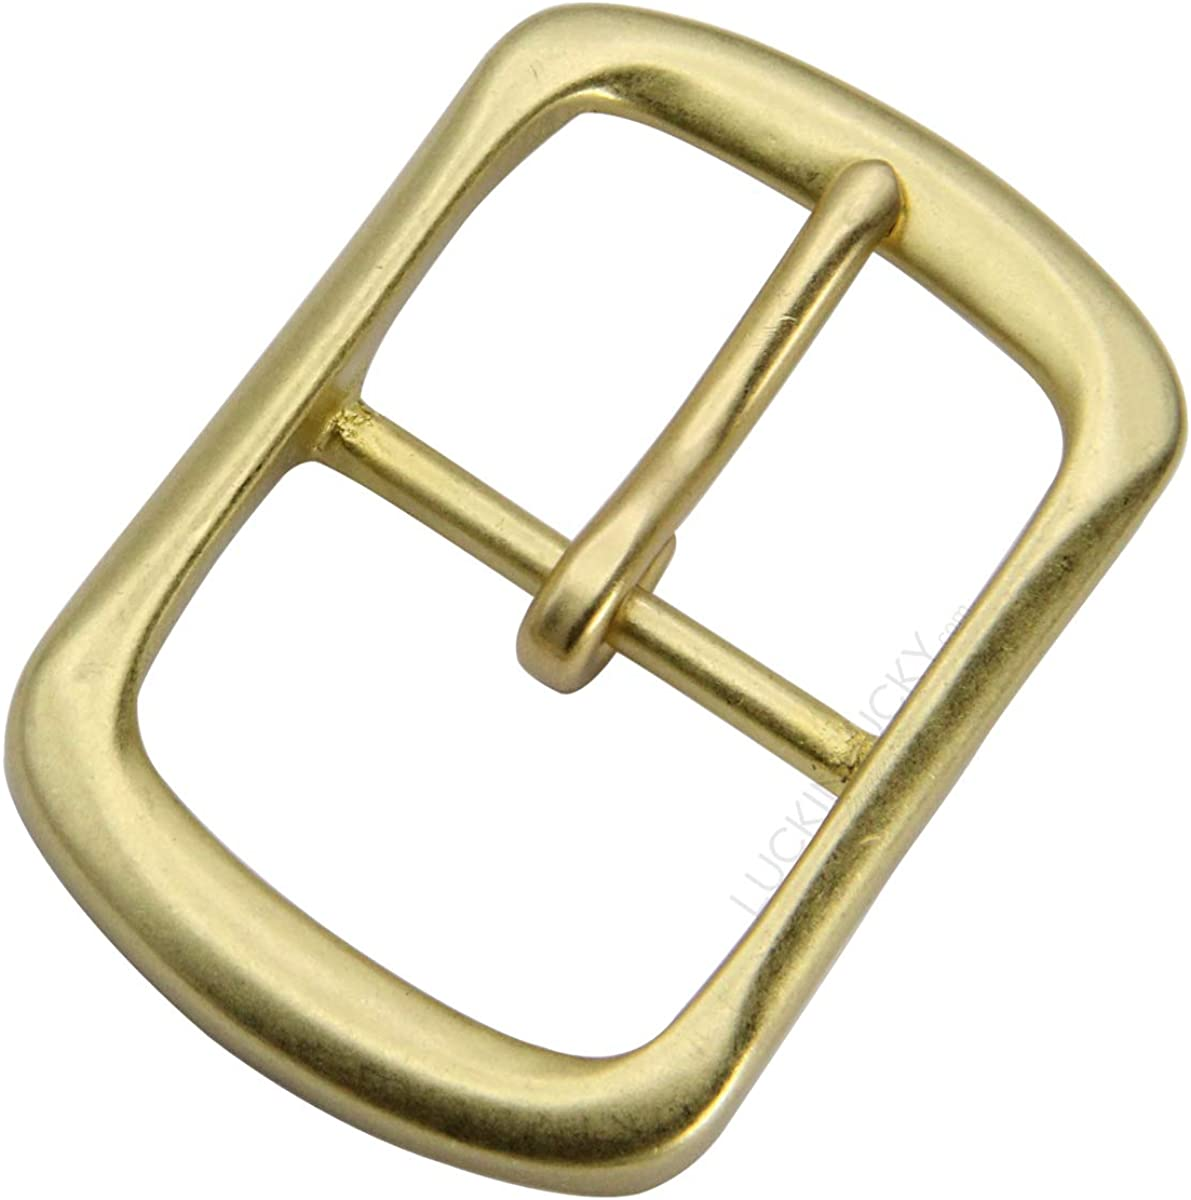 """LUCKINLUCKY Solid Brass Belt Buckle,Replacement Belt Buckle for 1 1/2""""(38mm) Wide"""